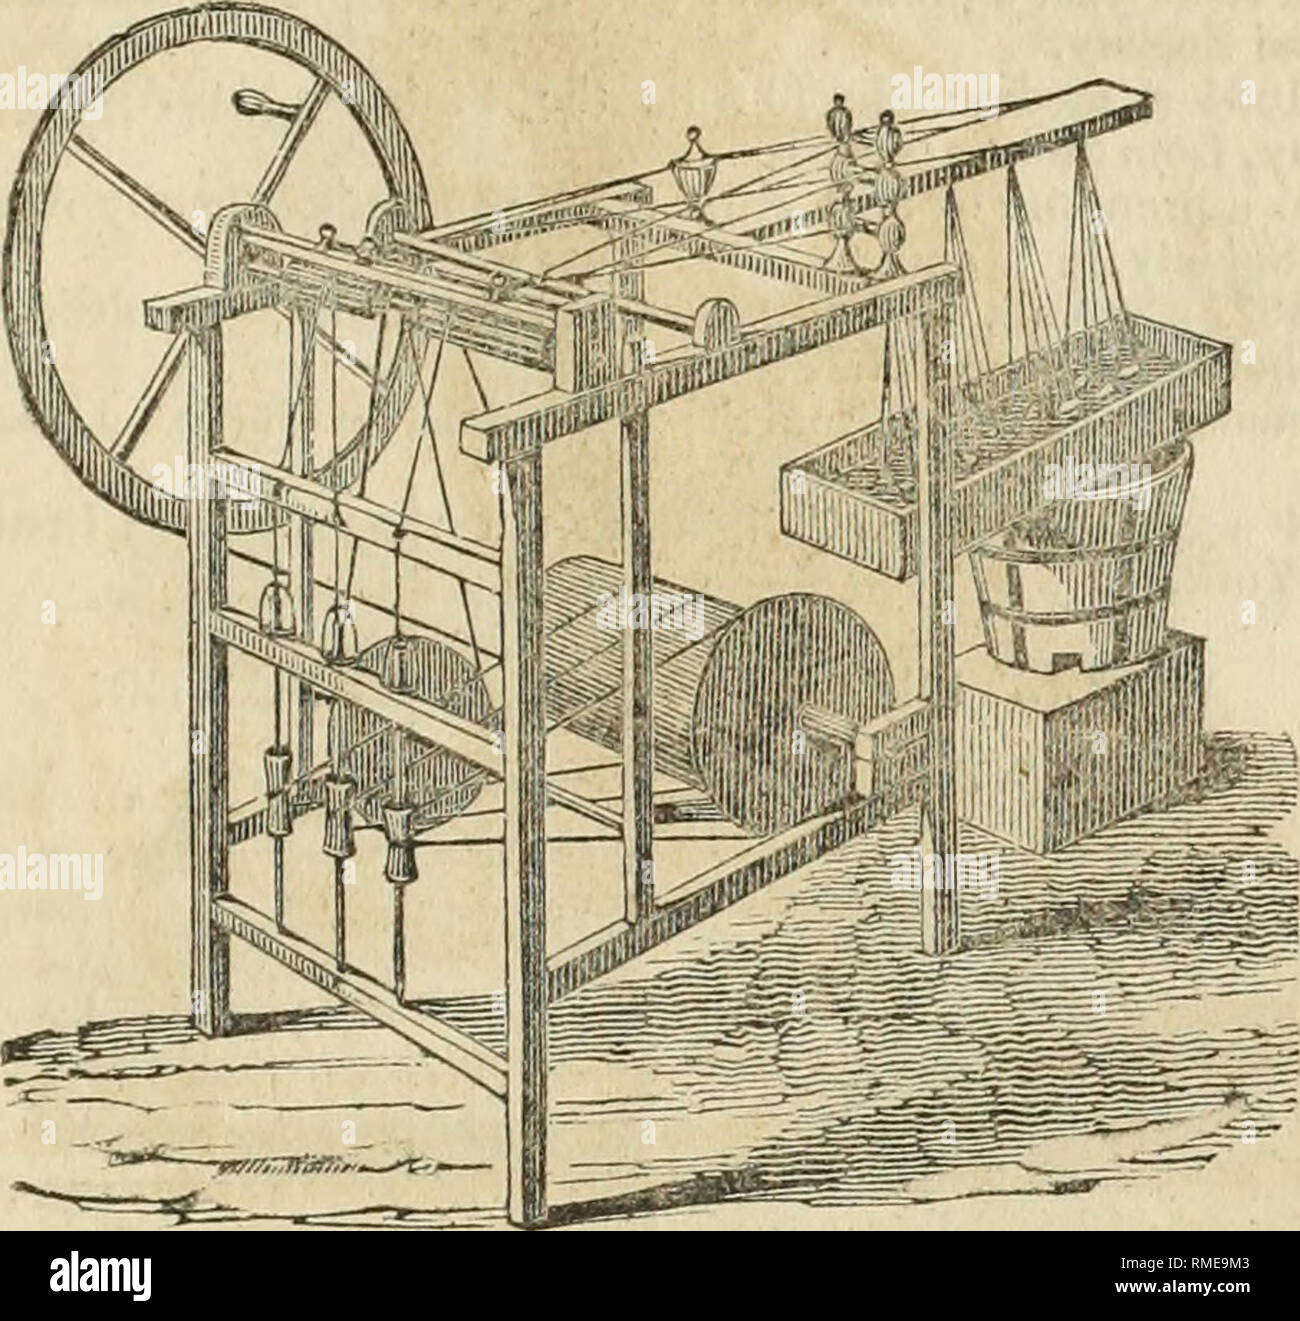 . Annual catalogue of the New England Agricultural Warehouse and Seed Store, connected with the New England Farmer Office, No. 51 & 52 North Market Street, Boston. Garden Seeds, fyc. 73 BROOKS'S PATENT SILK SPINNING MACHINE.. Brooks's silk spinning and reeling machine, is found to be a very simple and easy operating machine, and yet one of the most per- fect that has been invented for the purpose of reeling and twisting silk from the cocoons, and manufacturing it into sewing silk. -By the different arrangements of this machine, it will operate upon a single or double thread, as may be requ - Stock Image